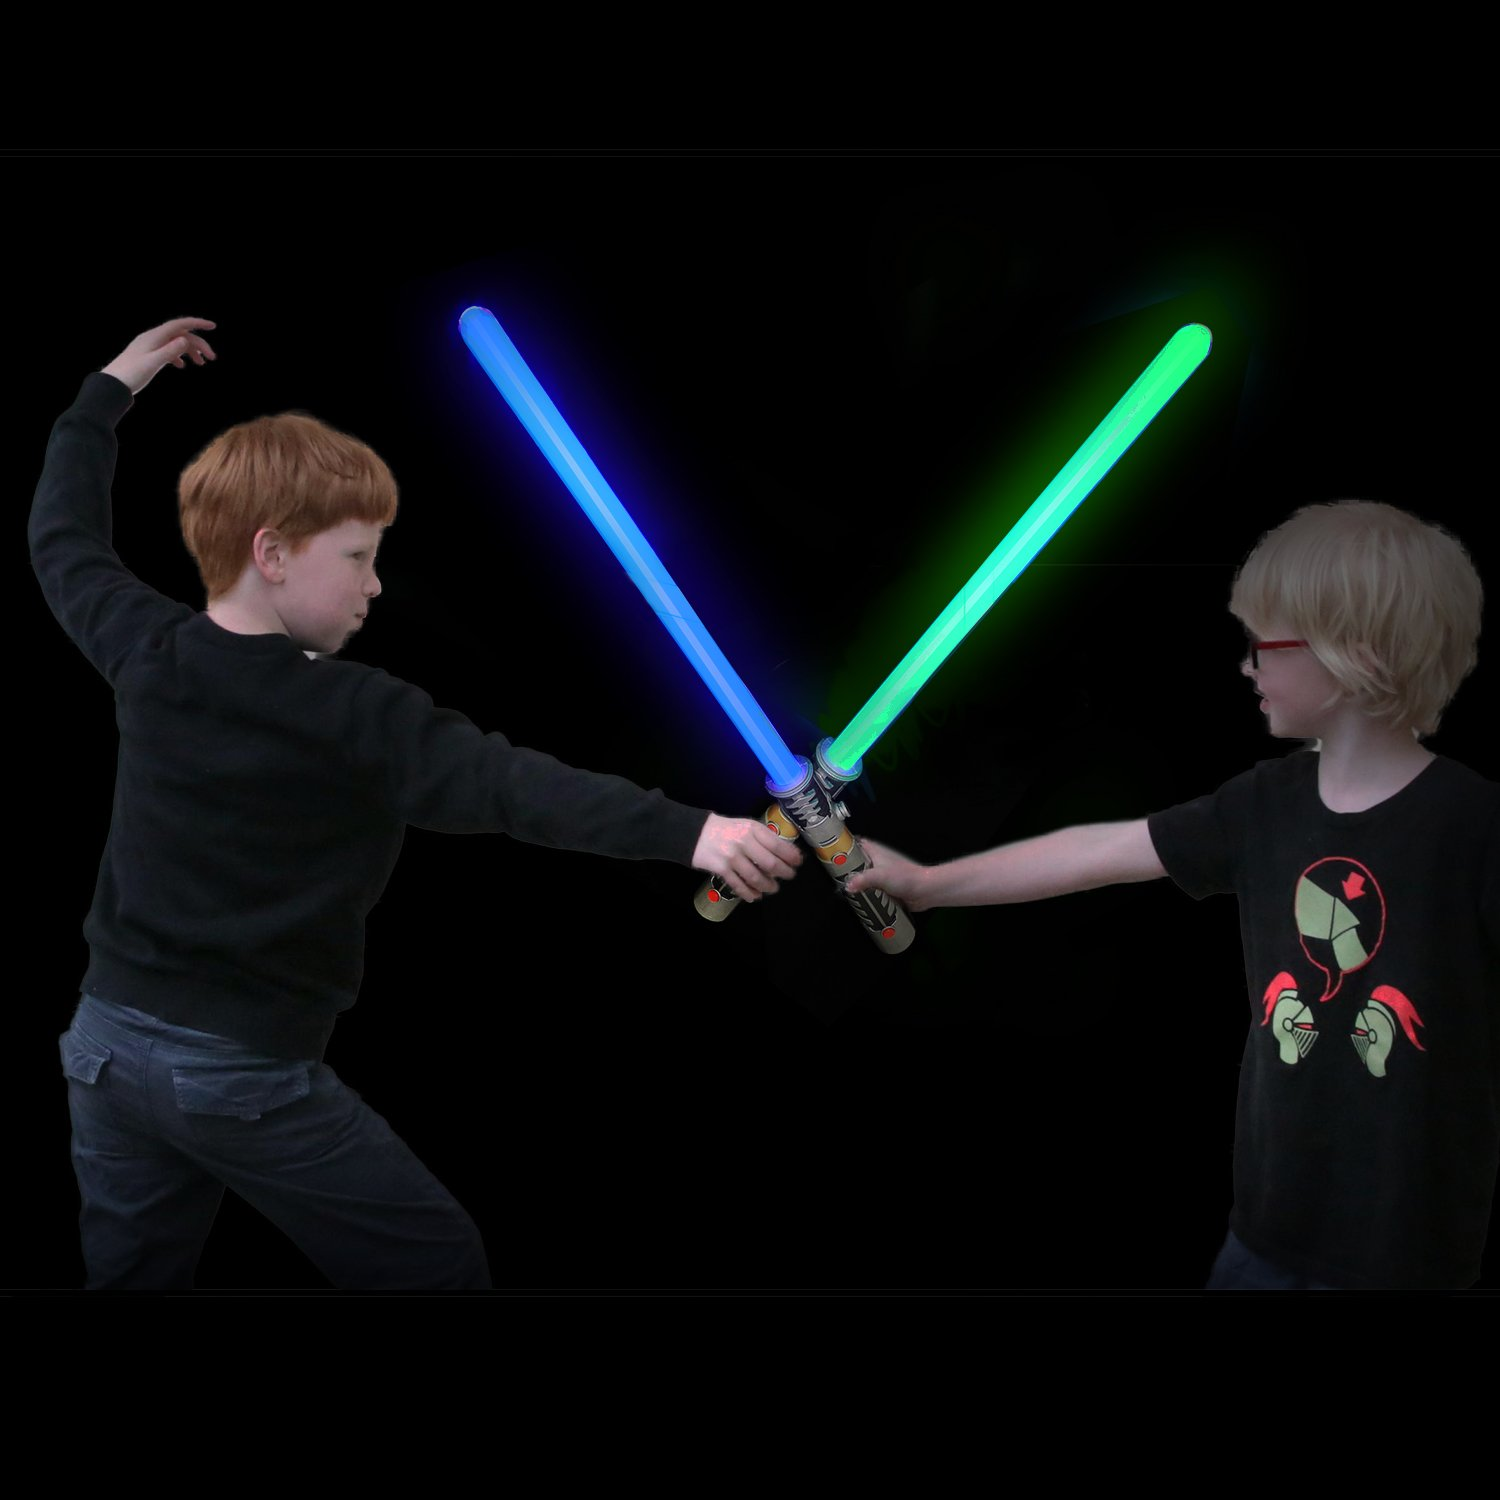 Laser Sword's for Kids (2 Pack) - Double Bladed Light Saber Toy with Sounds – Blue/Green Colors - 28'' inch – Perfect for Star Wars Themed Party – 6 AAA Batteries Included (replaceable)